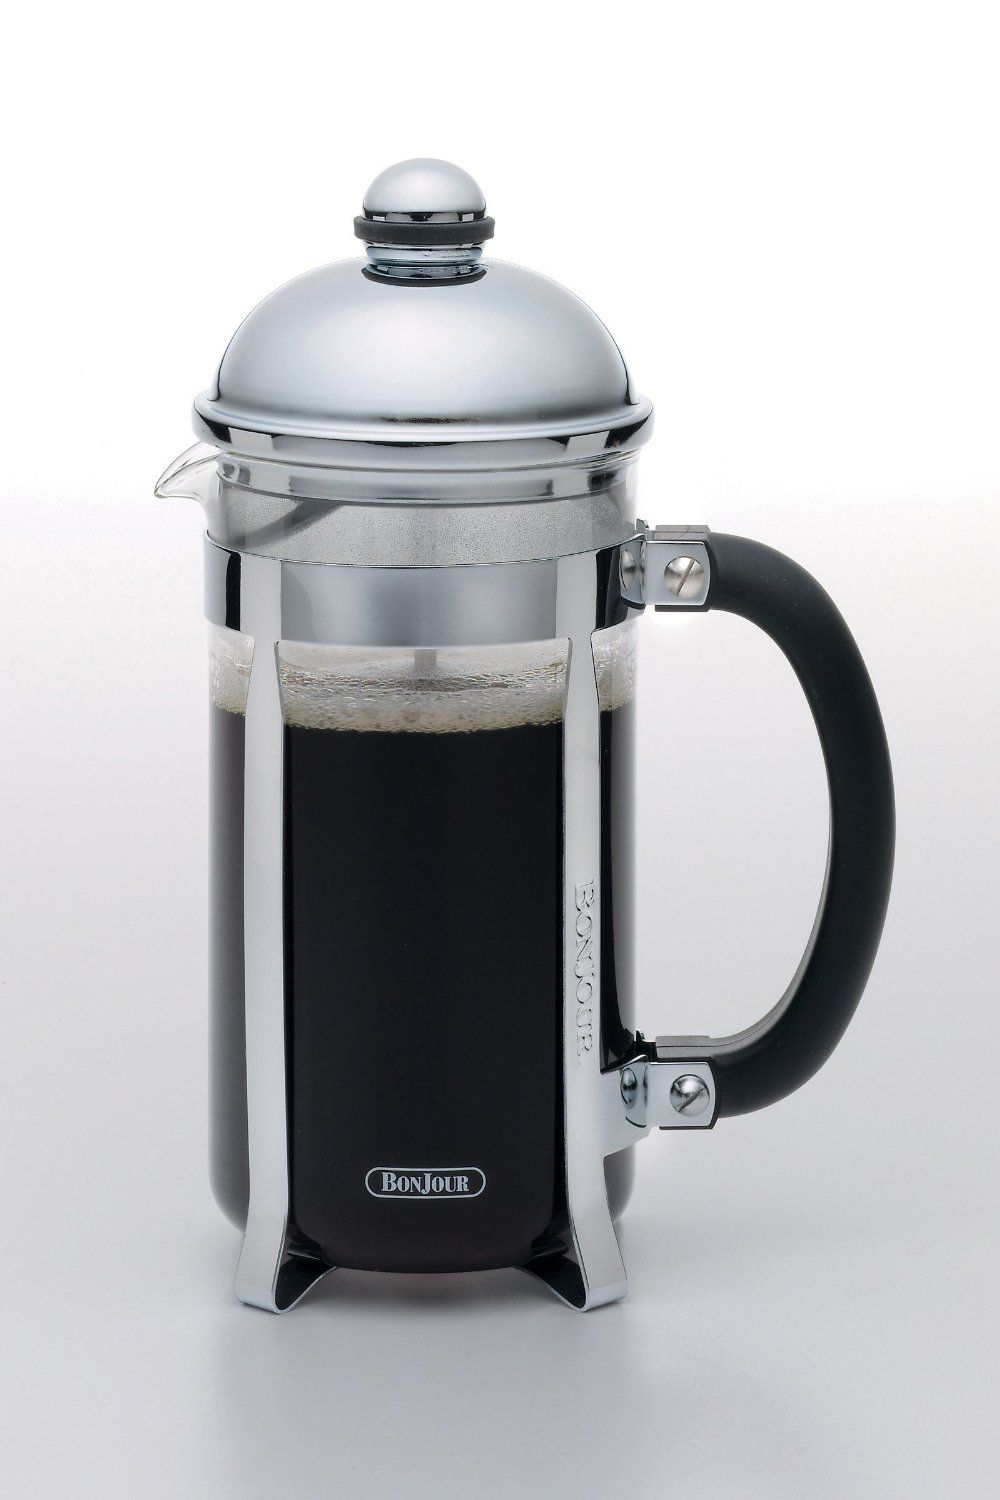 Bonjour french press maximus with flavor lock